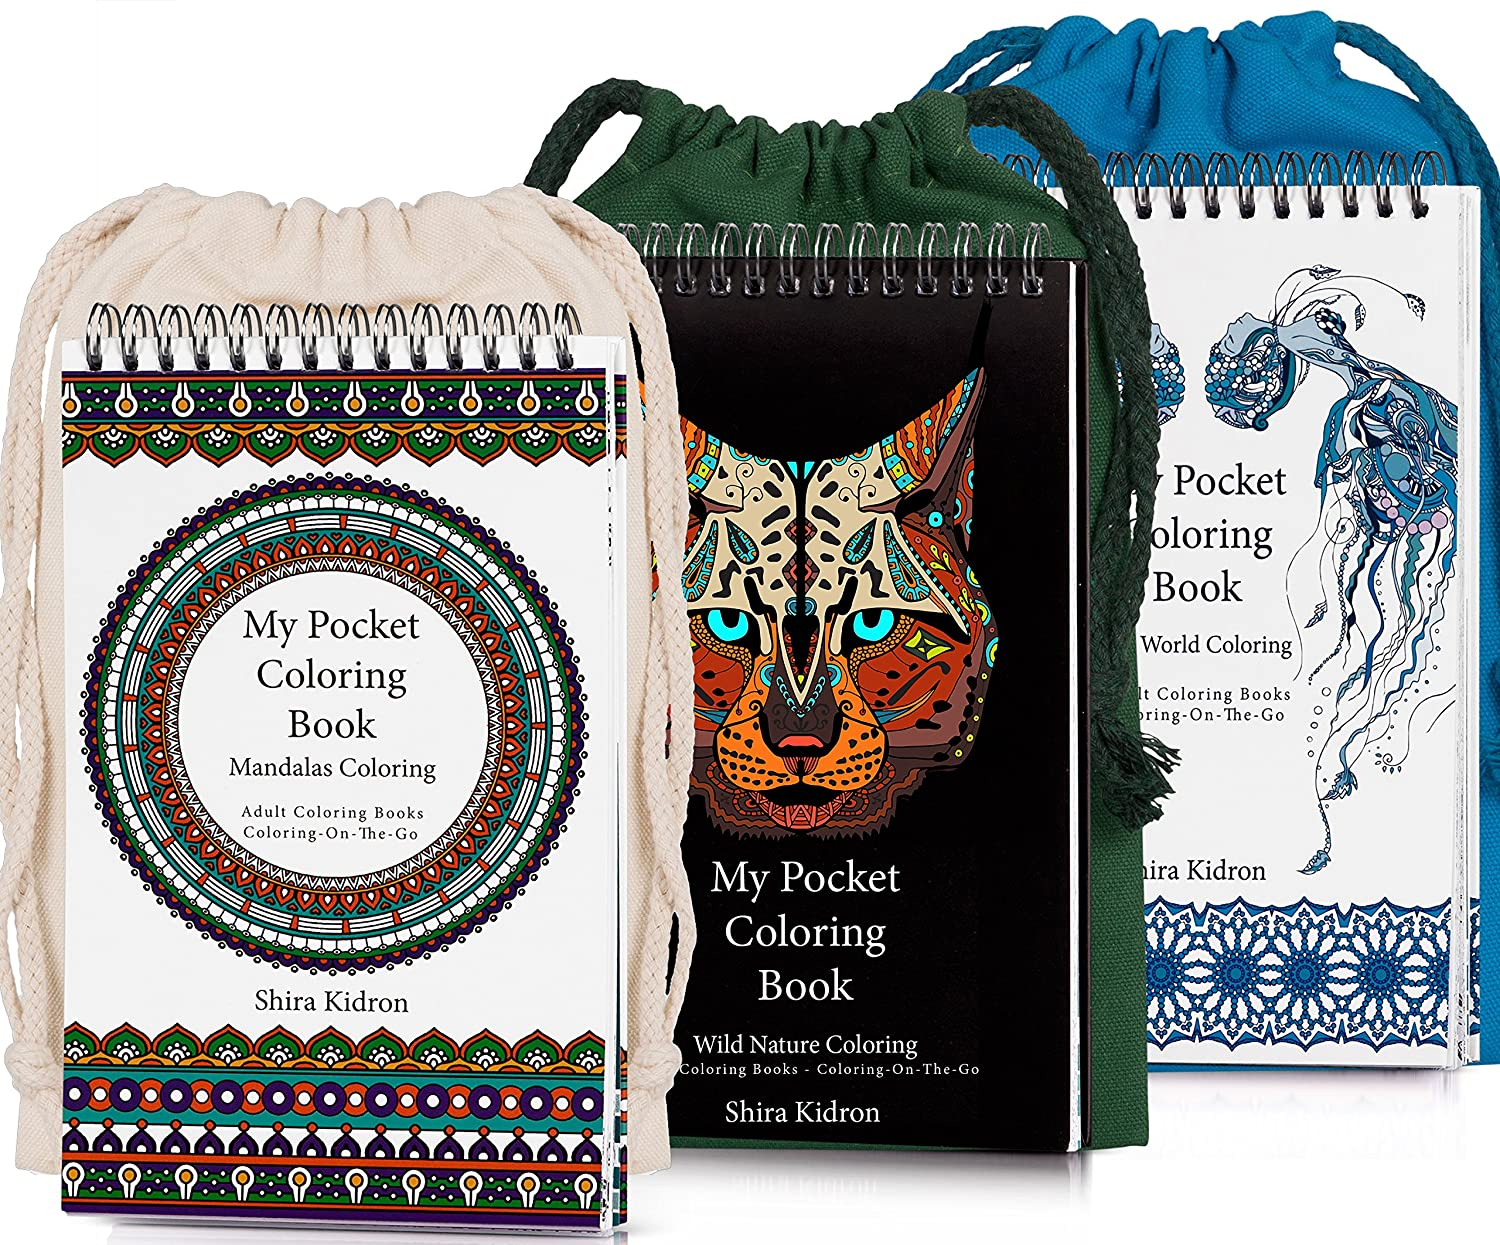 Coloring-On-The-Go Adult Coloring Books –74 Sea World Coloring Pages W/Durable Designed Pouch & Hardcover Spiral Bound Format-Deluxe Portable for Grownups, DIY Creative Kit -Be Creative Everywhere! Klementine's World